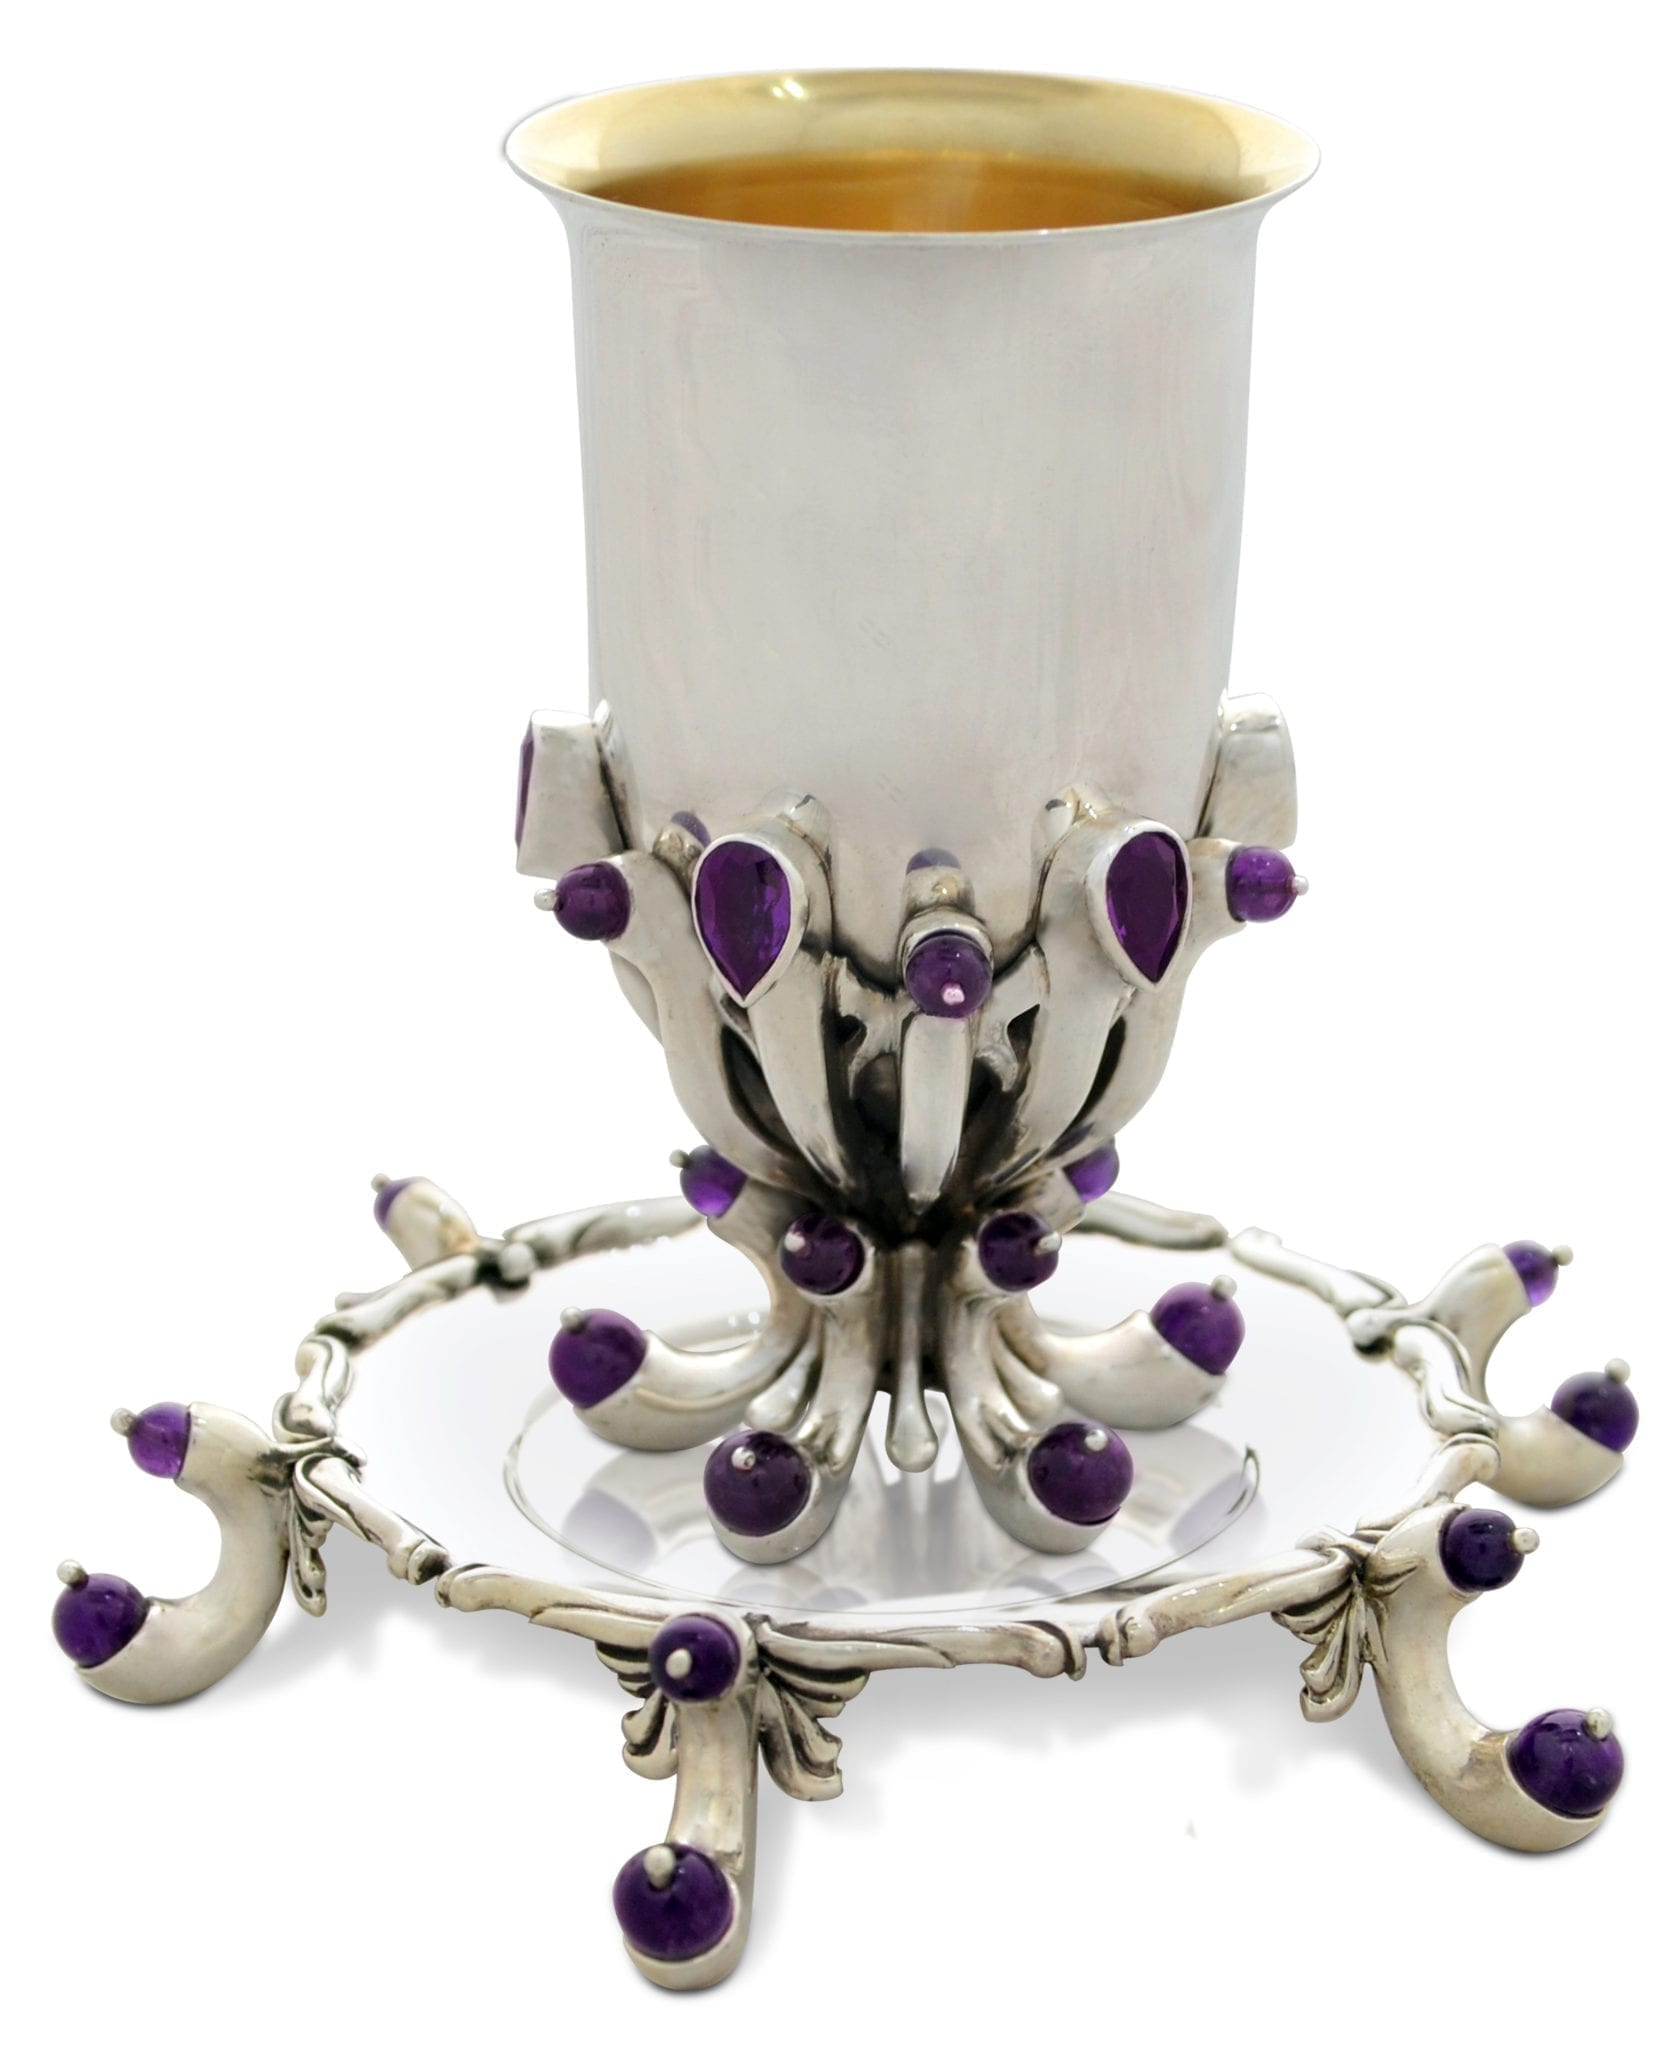 Sterling silver and amethyst cup and plate set